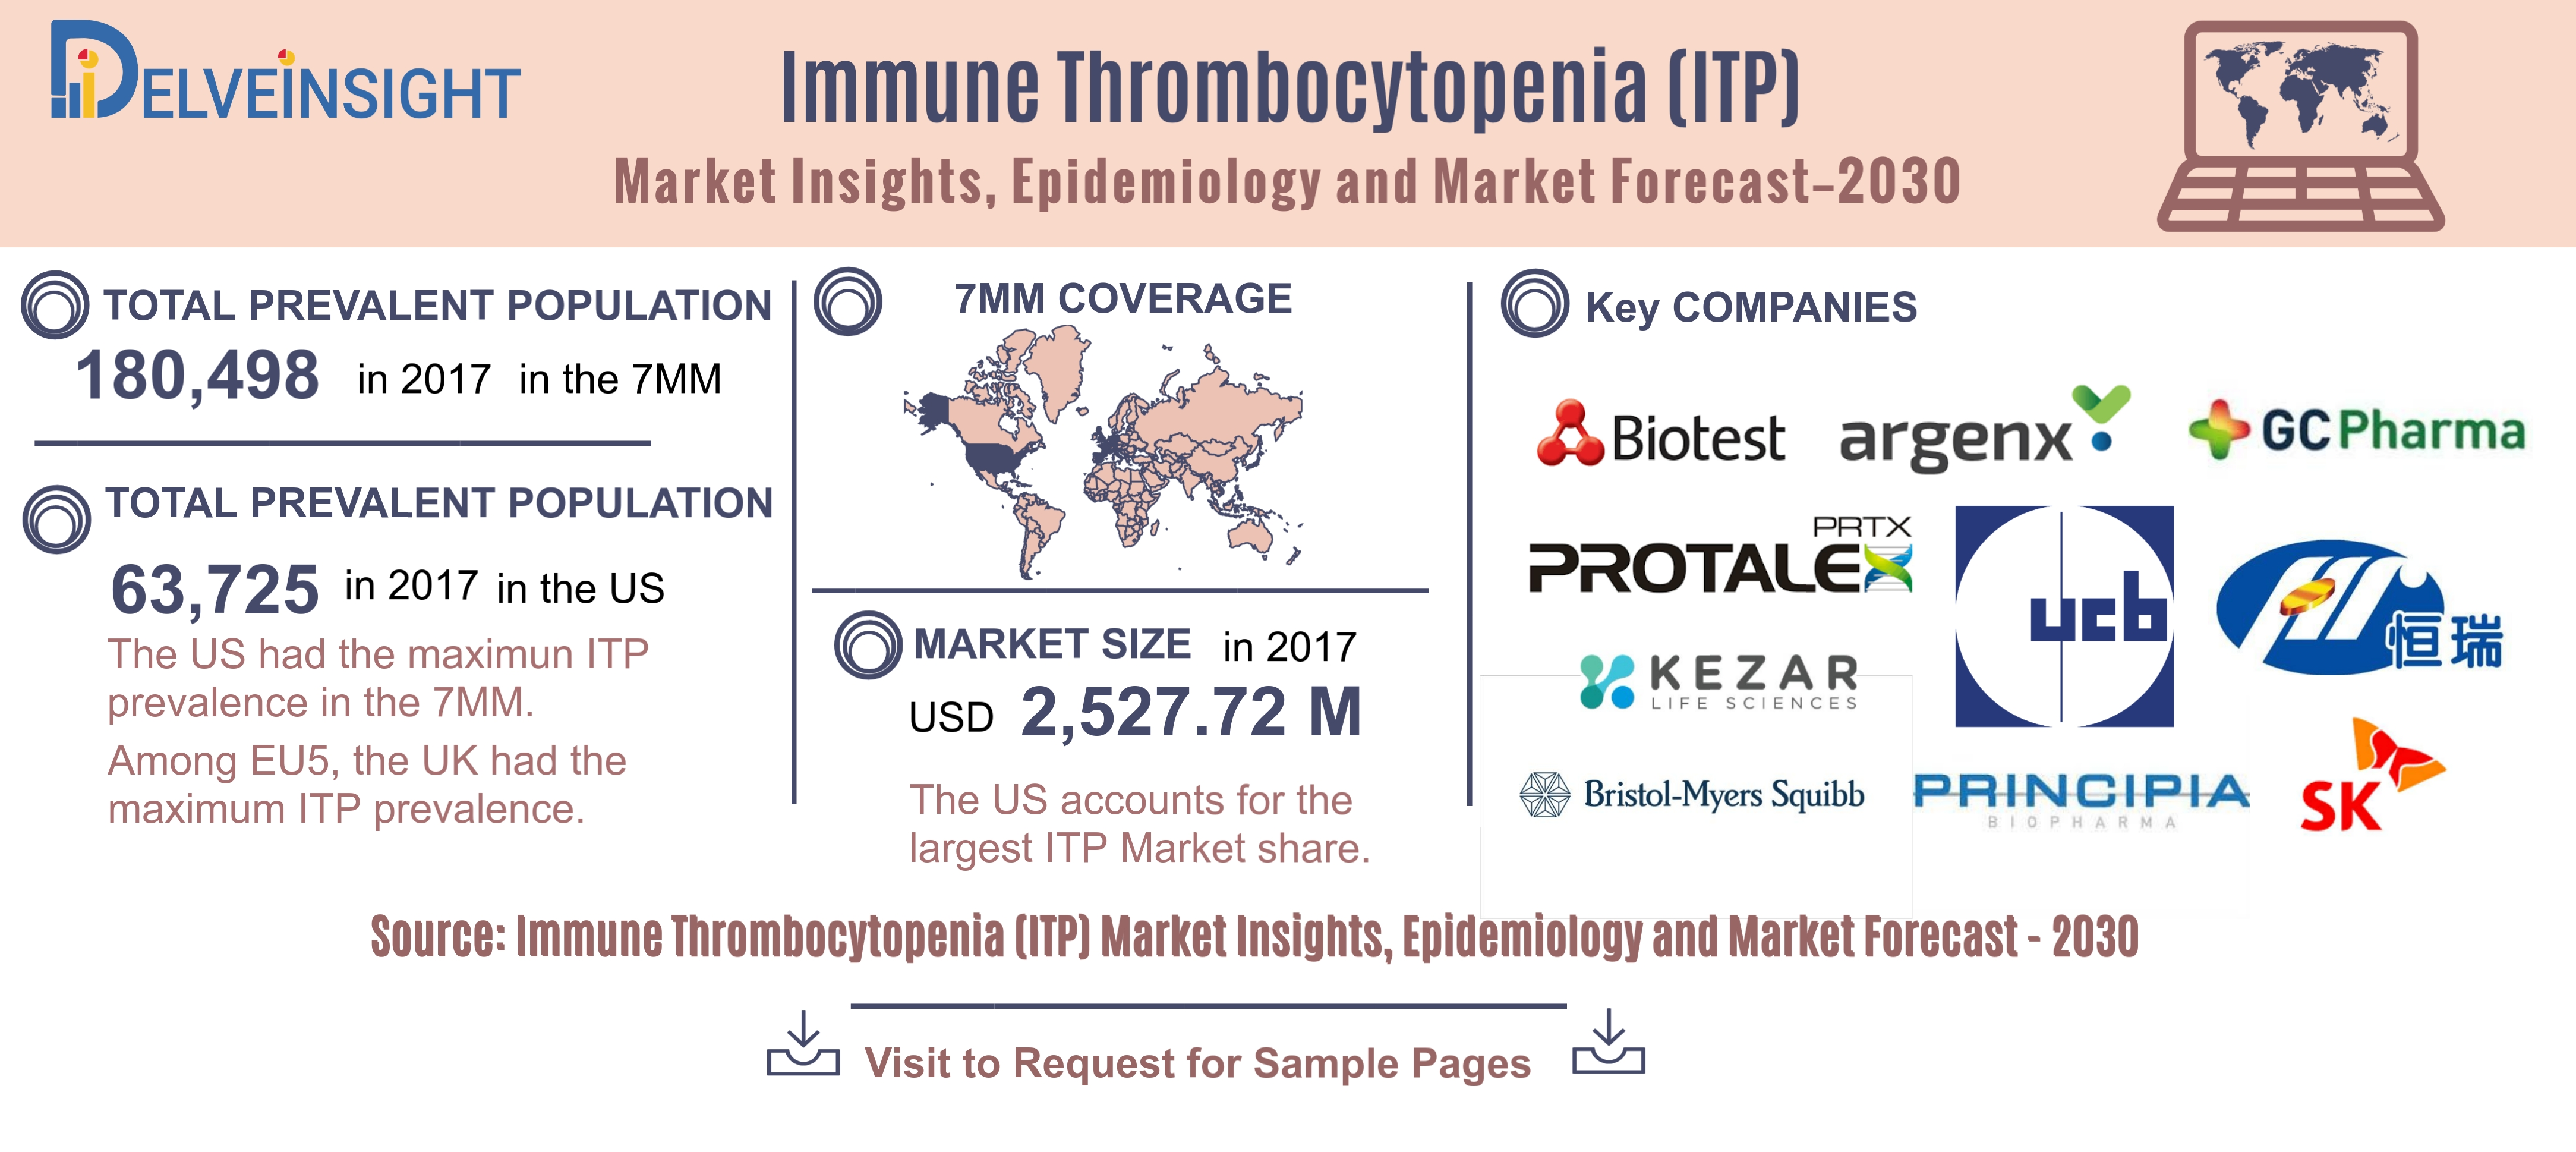 Immune Thrombocytopenia Market Insights, Epidemiology, and Pipeline Insights - 2017-30